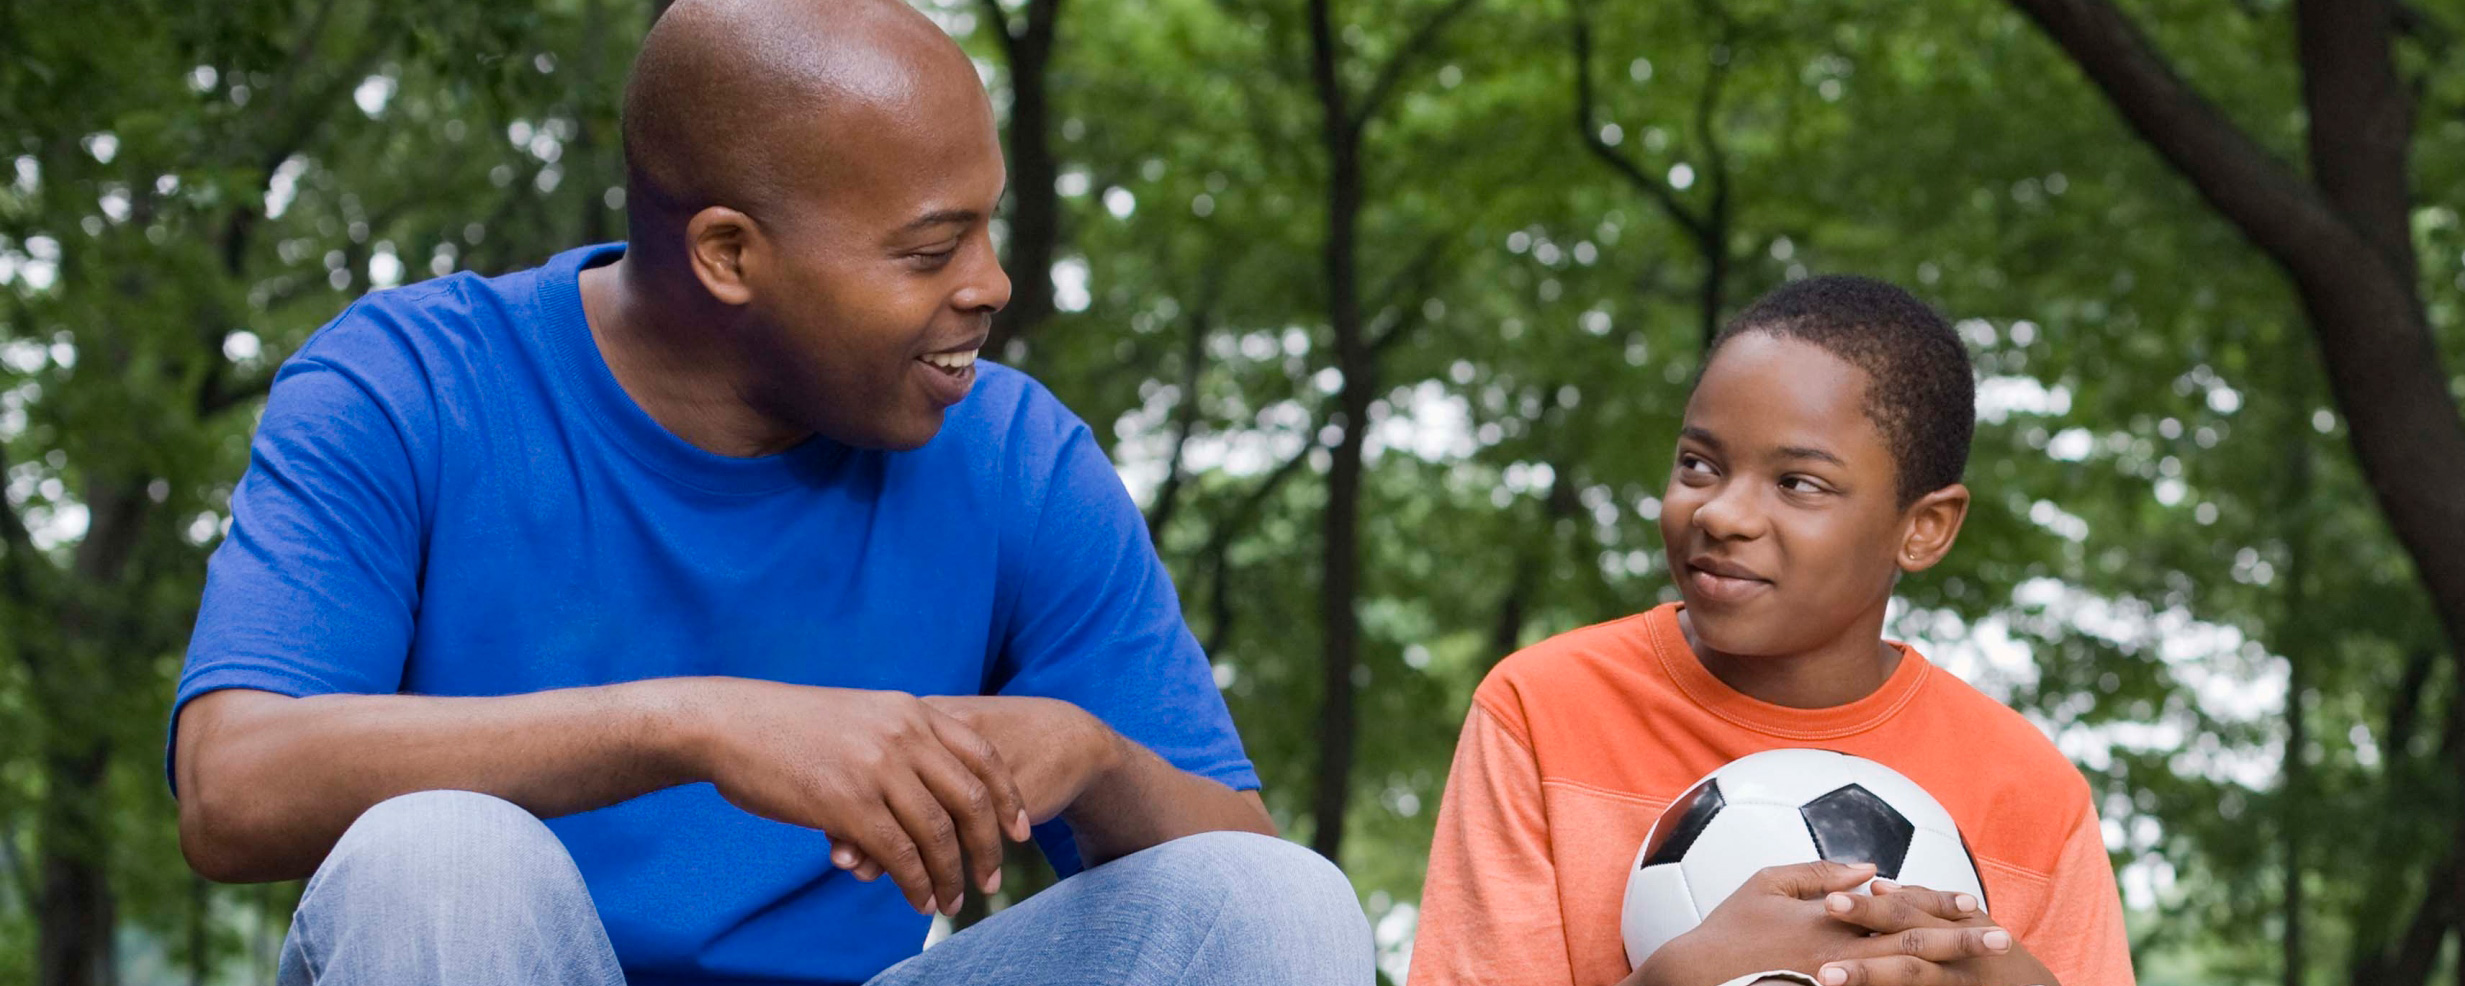 mentoring young kids Factsheets for mentors mentoring boys  a and mazlish, e, 2004, how to talk so kids will listen and listen so kids will talk , harper collins publishers, new york .